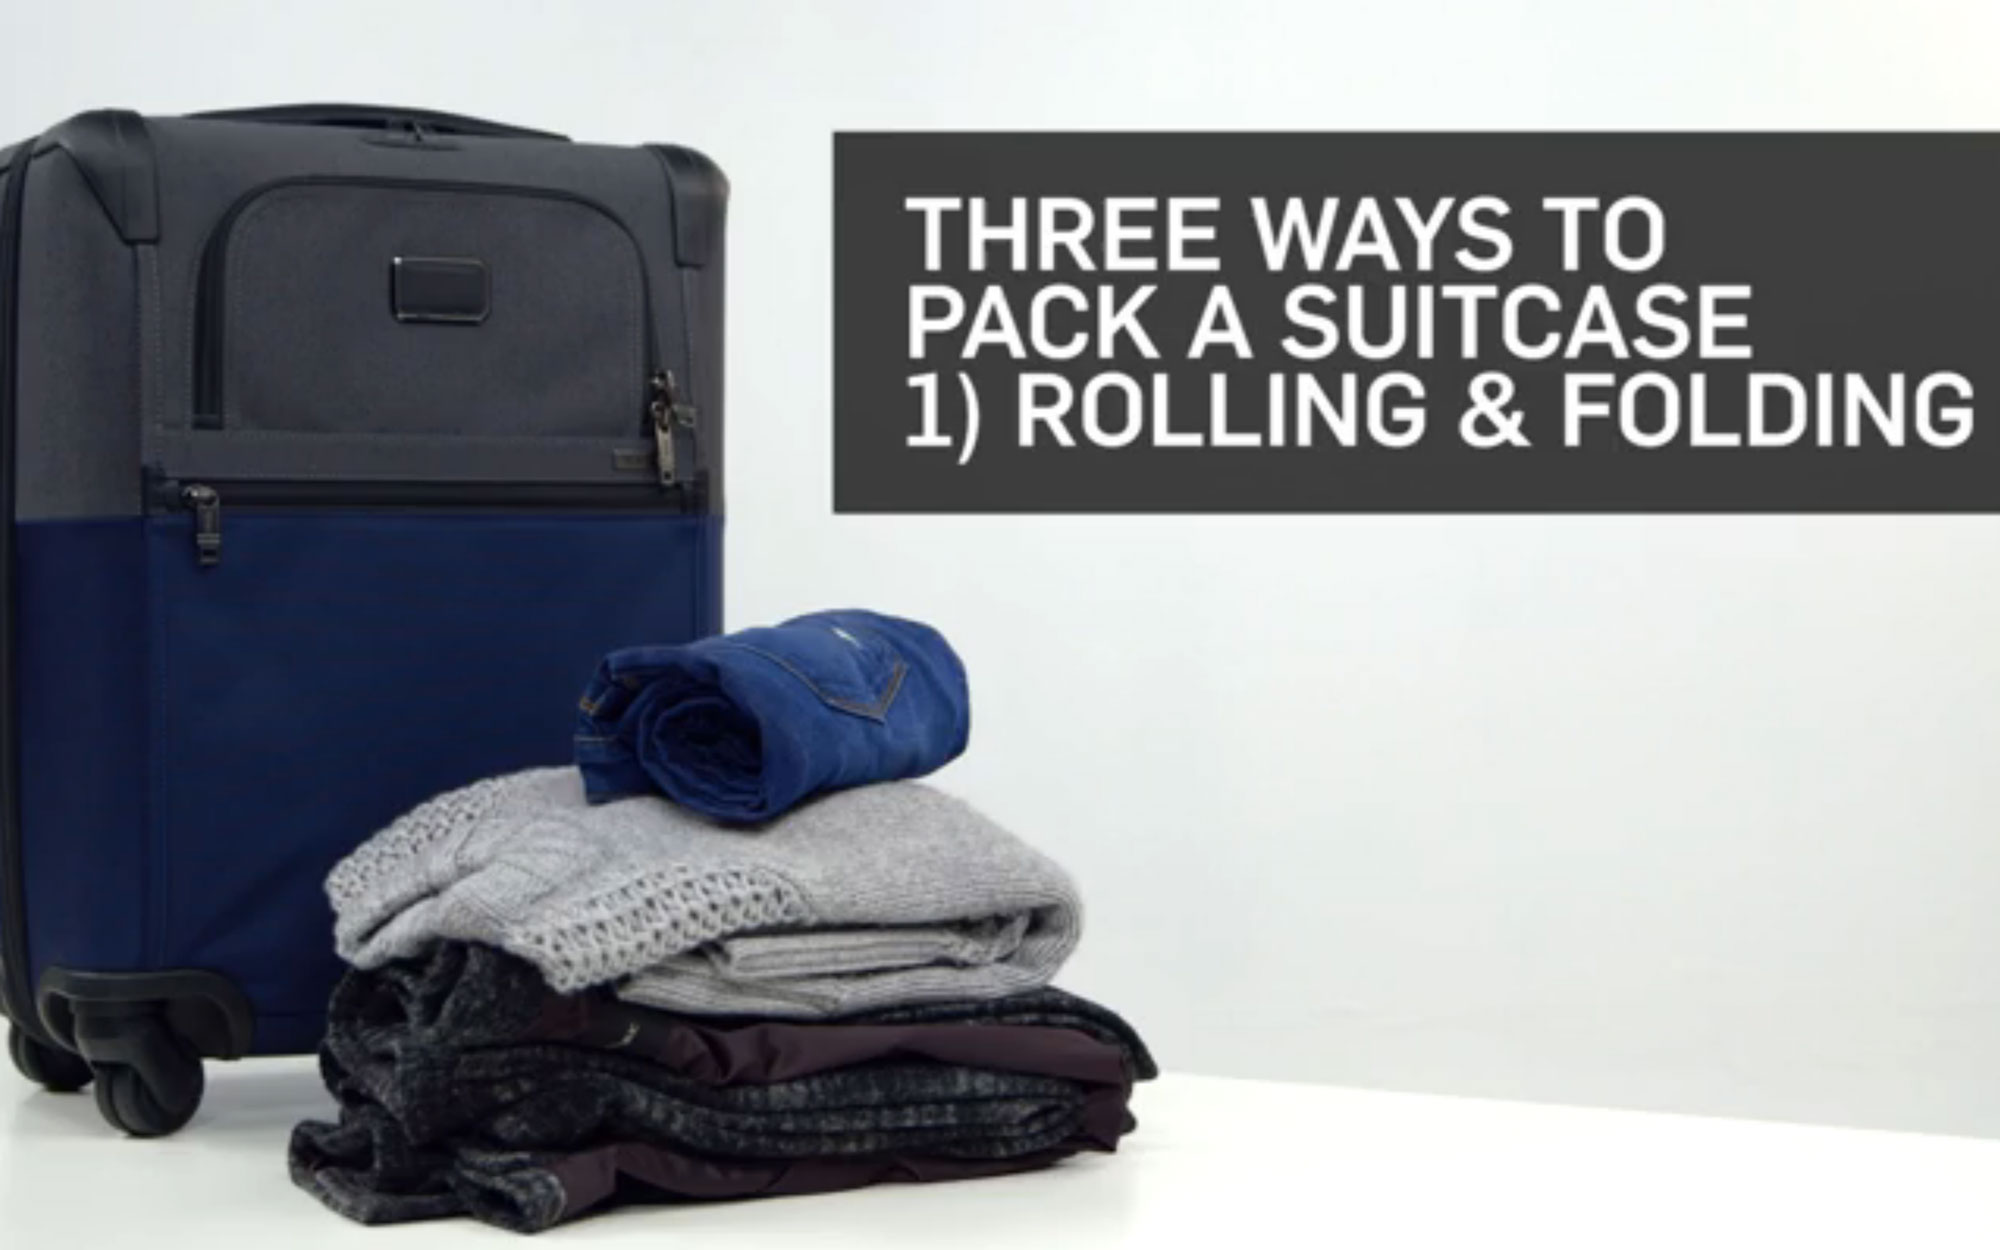 Best way to fold clothes for a trip - Video How To Roll And Fold Your Clothes When Packing